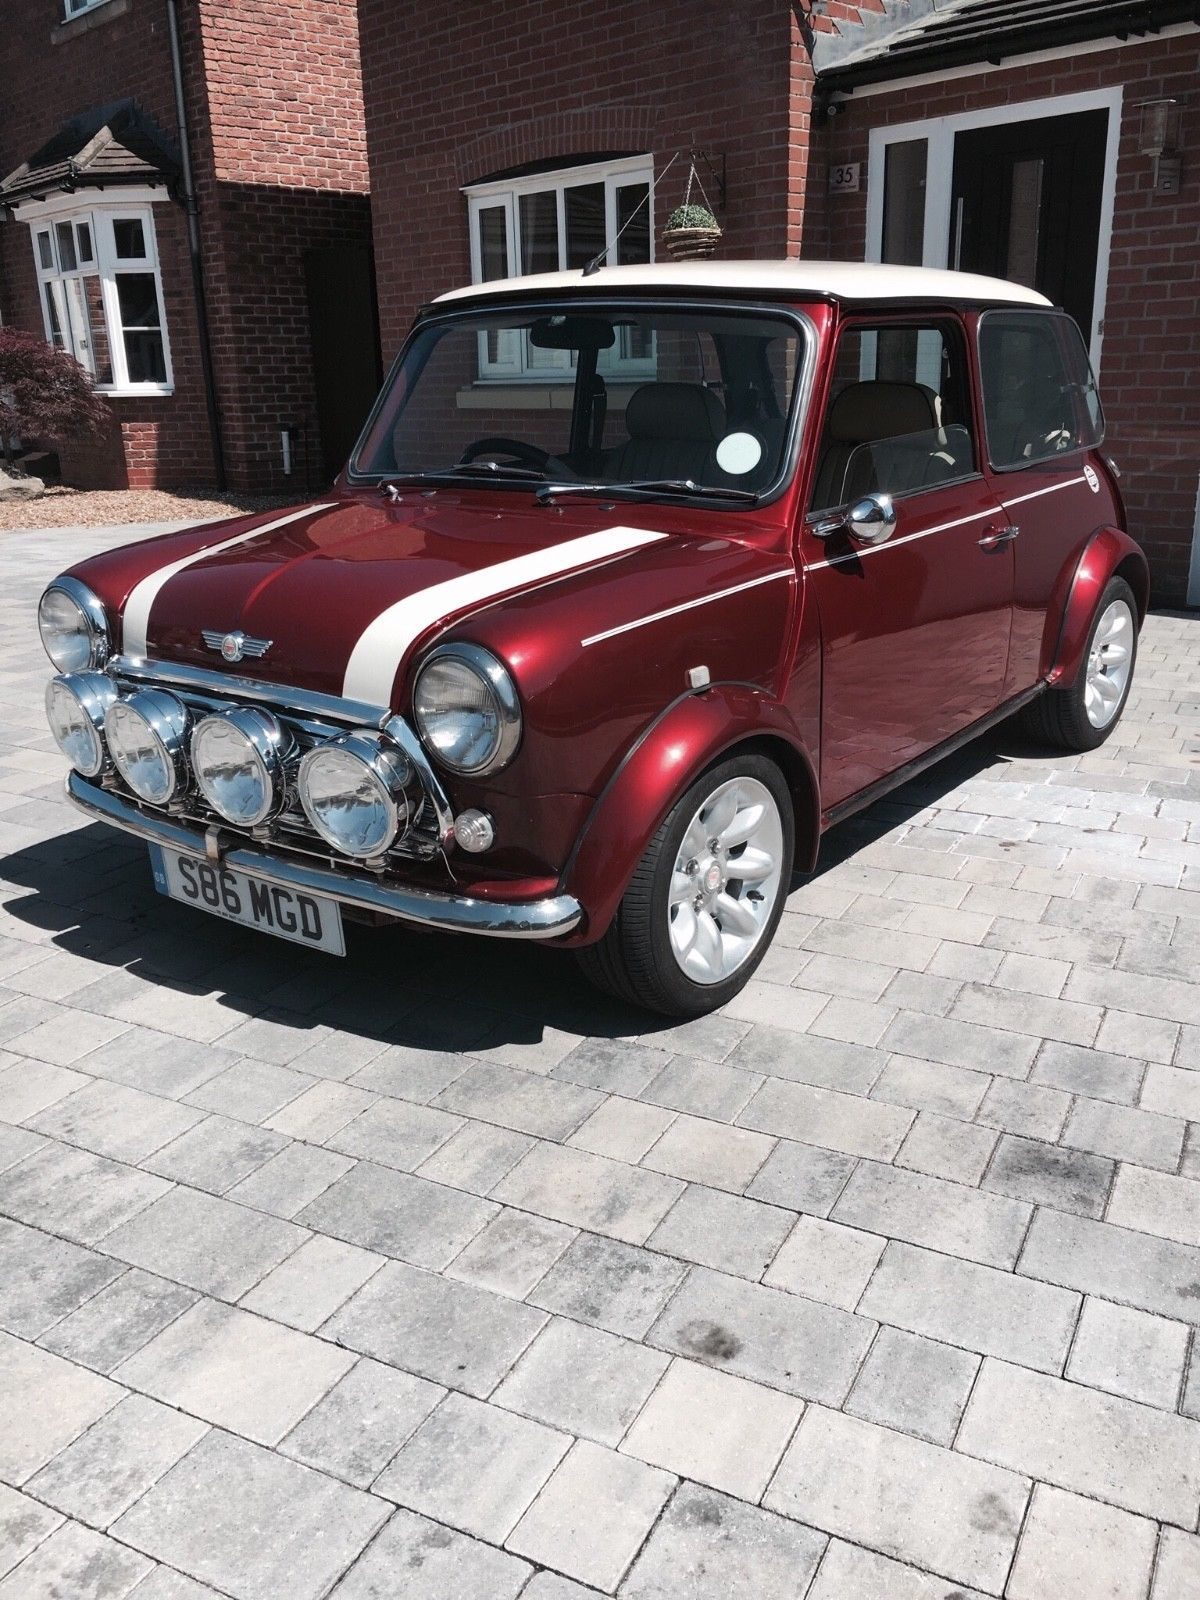 Ebay Rover Mini Cooper 13 63k Full History Long Motcompletely